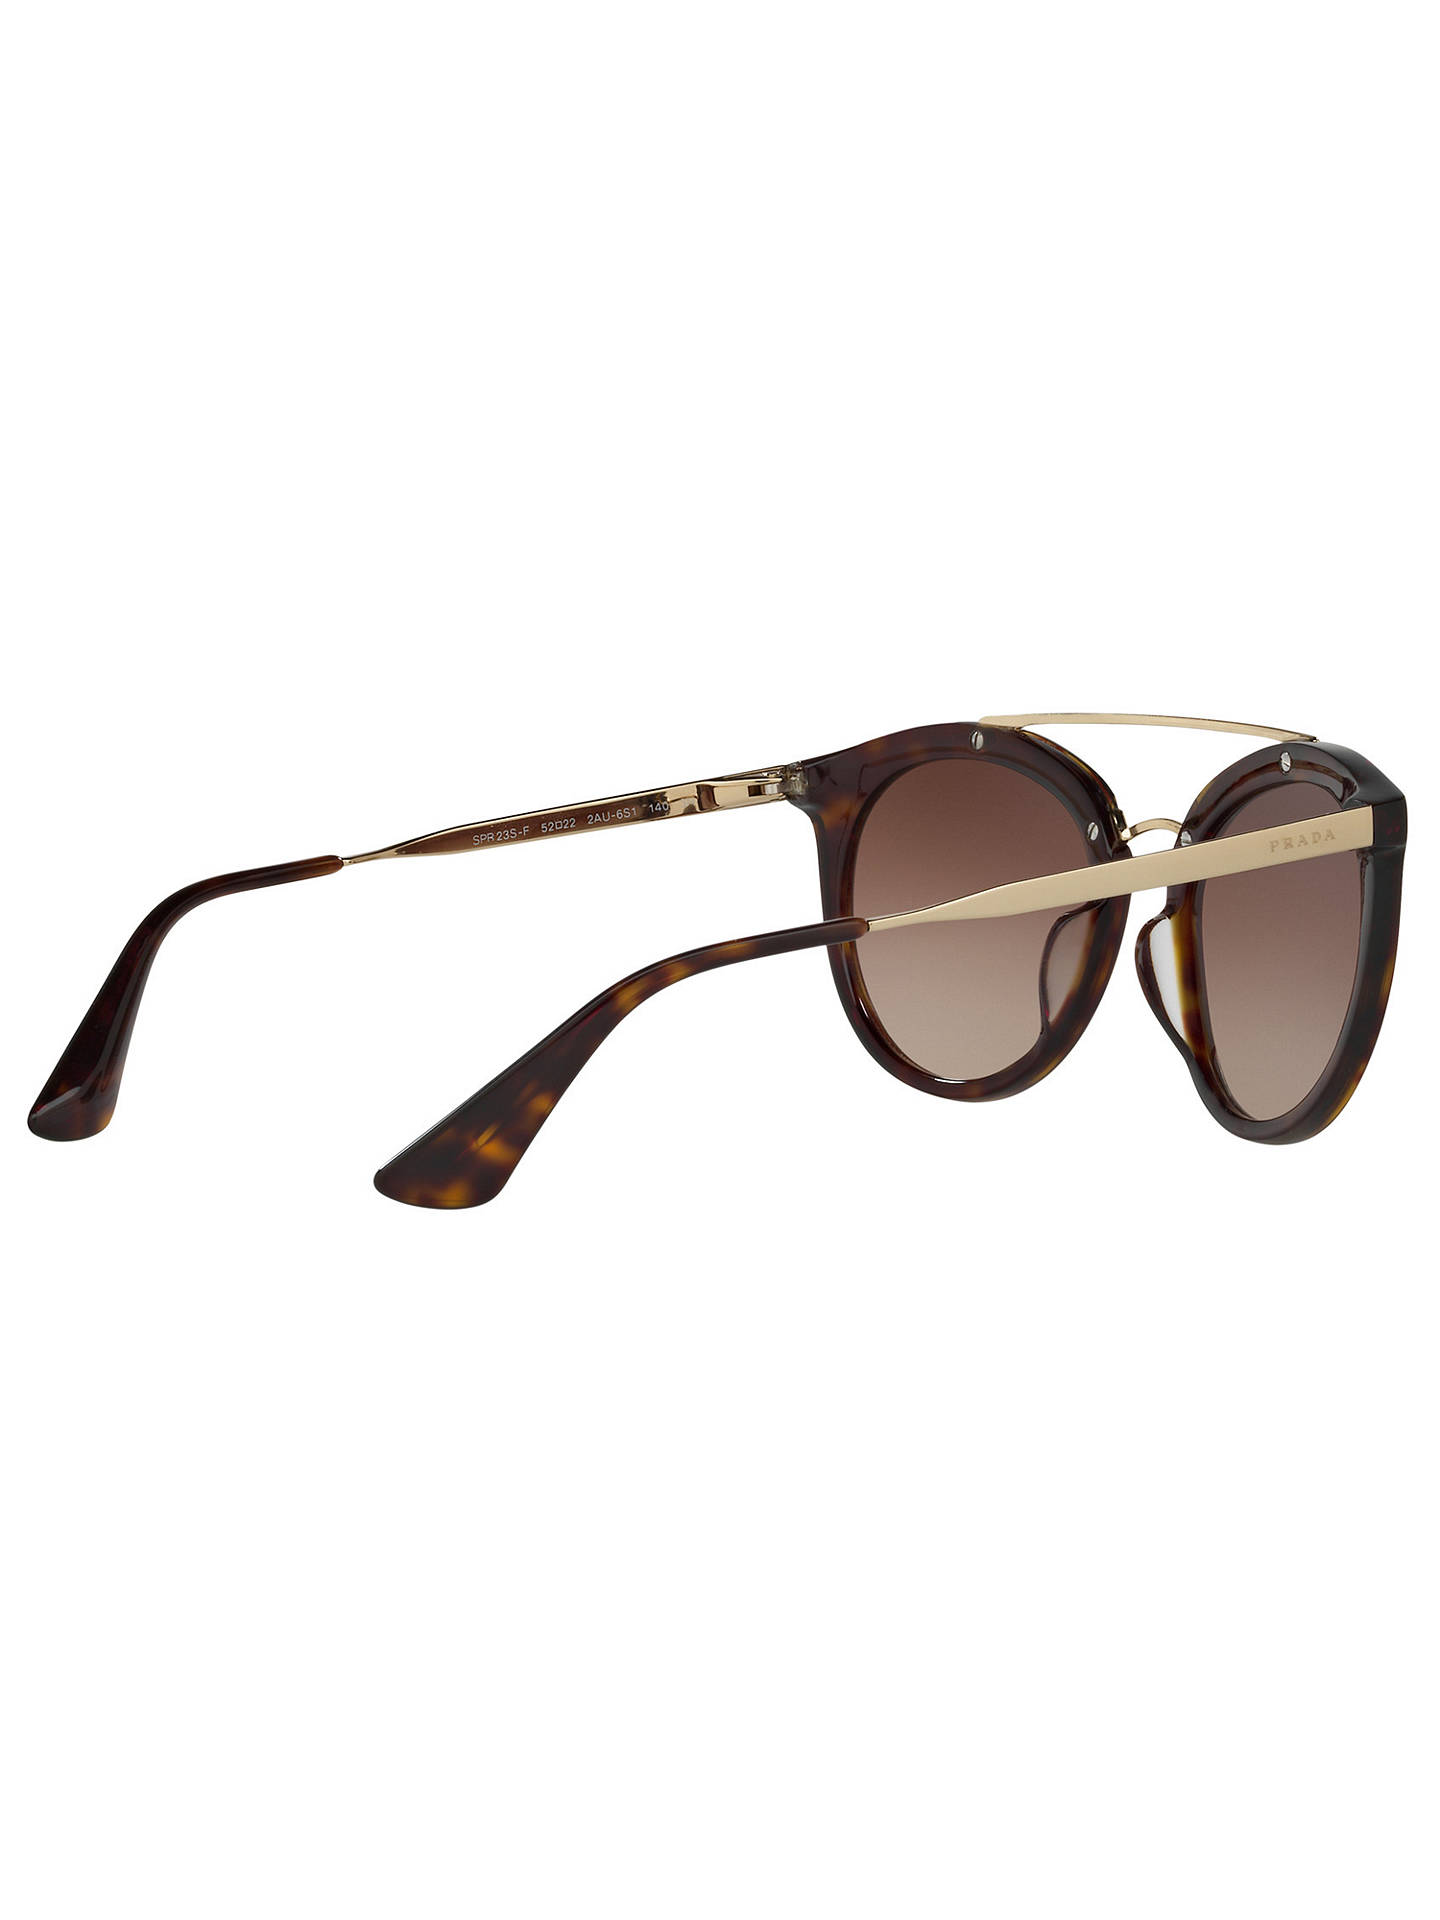 63139271bbb4 ... cheapest buyprada pr 23ss cinema oval sunglasses tortoise brown  gradient online at johnlewis 70cf2 040ee italy prada ...